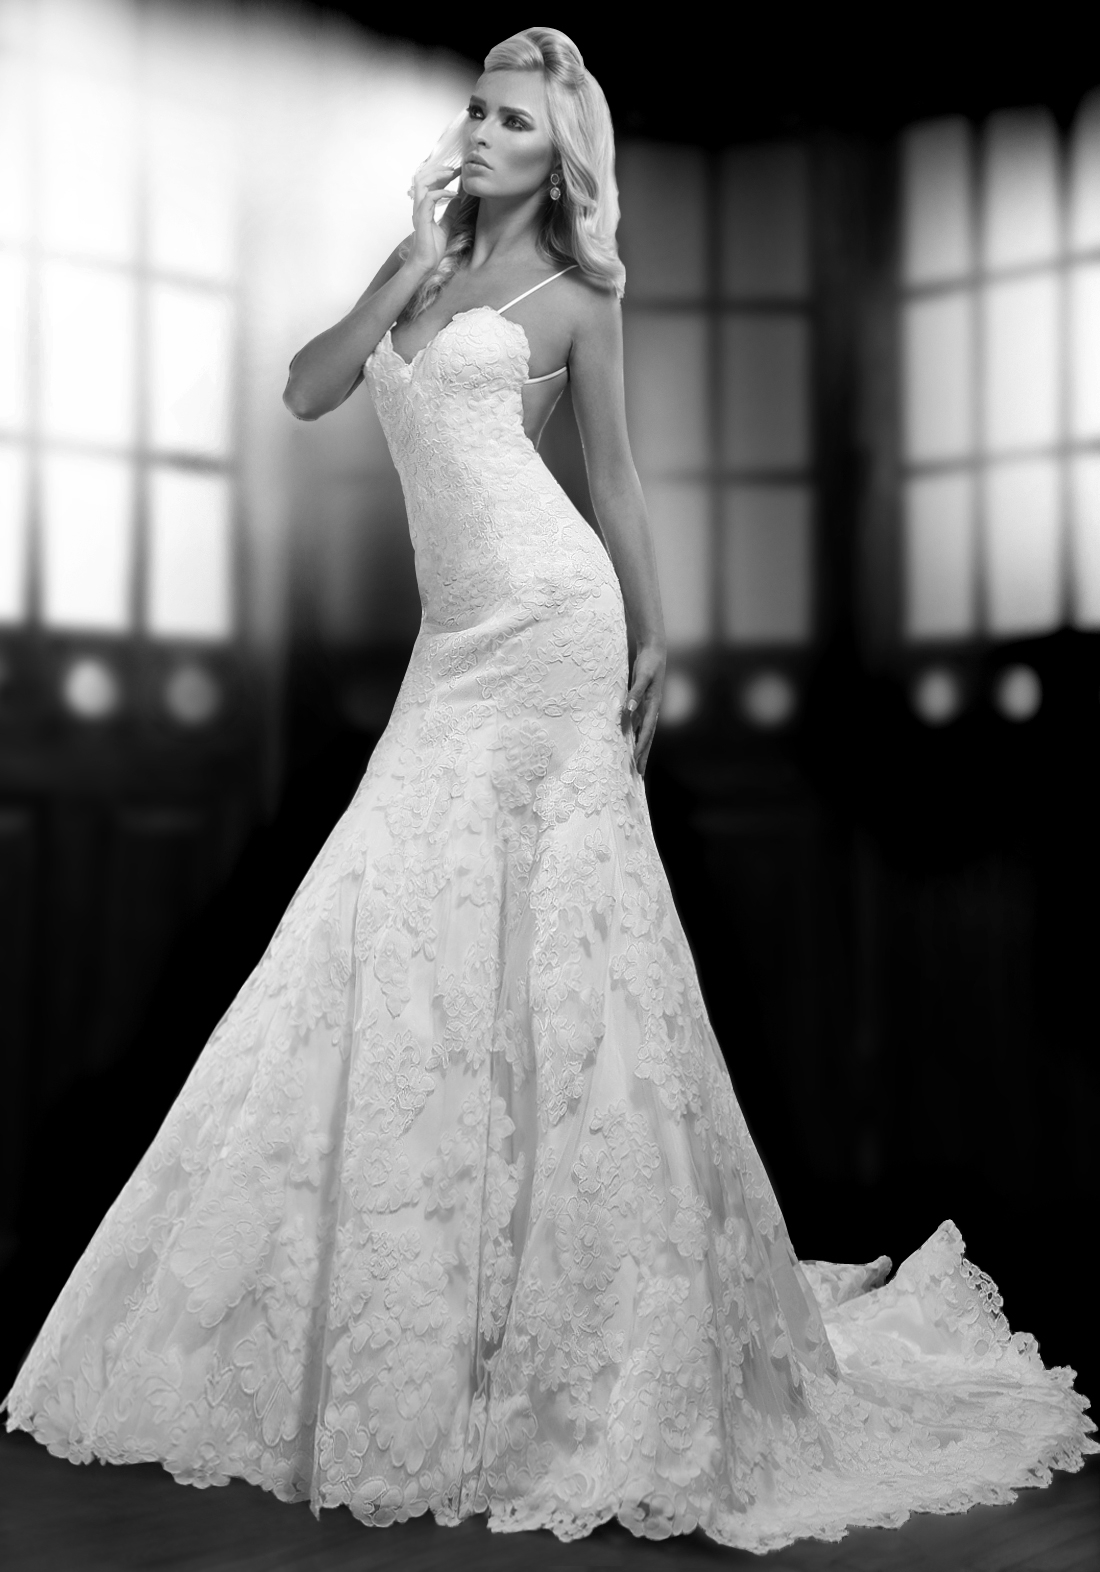 bien-savvy-wedding-dresses-2014-collection-24-01232014